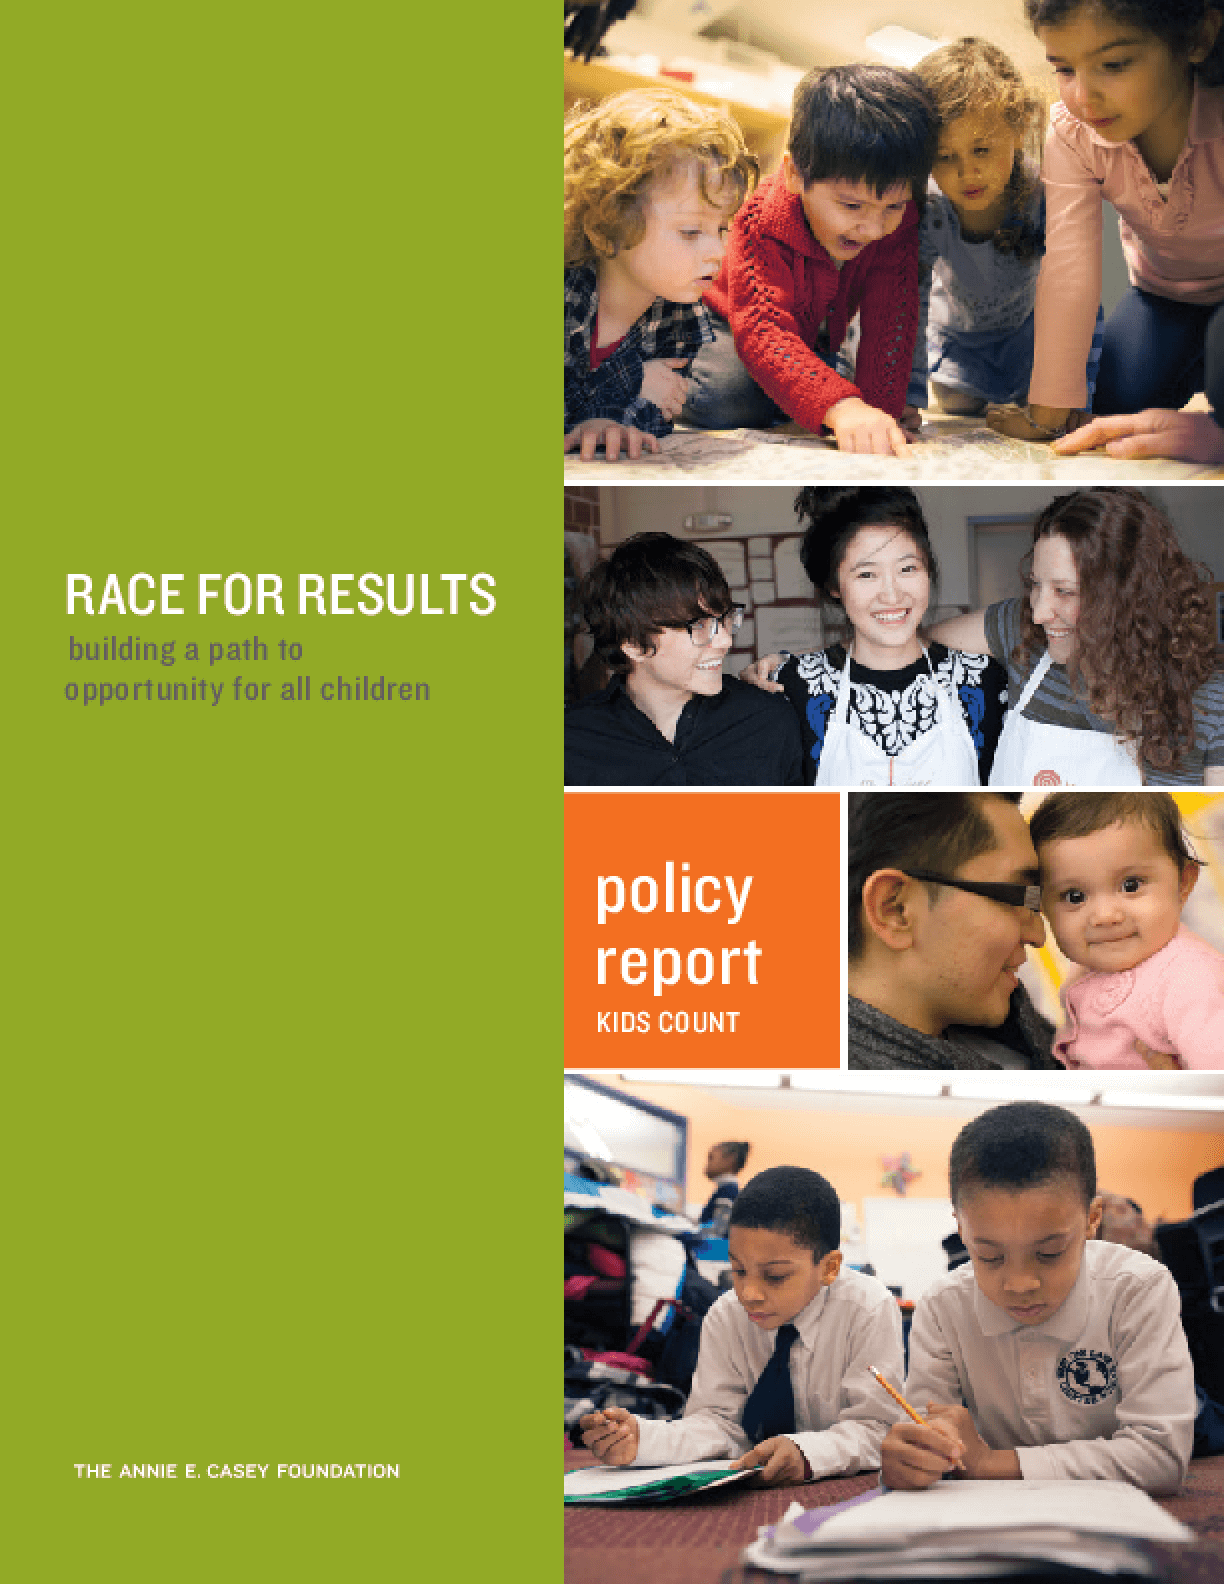 Race for Results: Building a Path to Opportunity for All Children